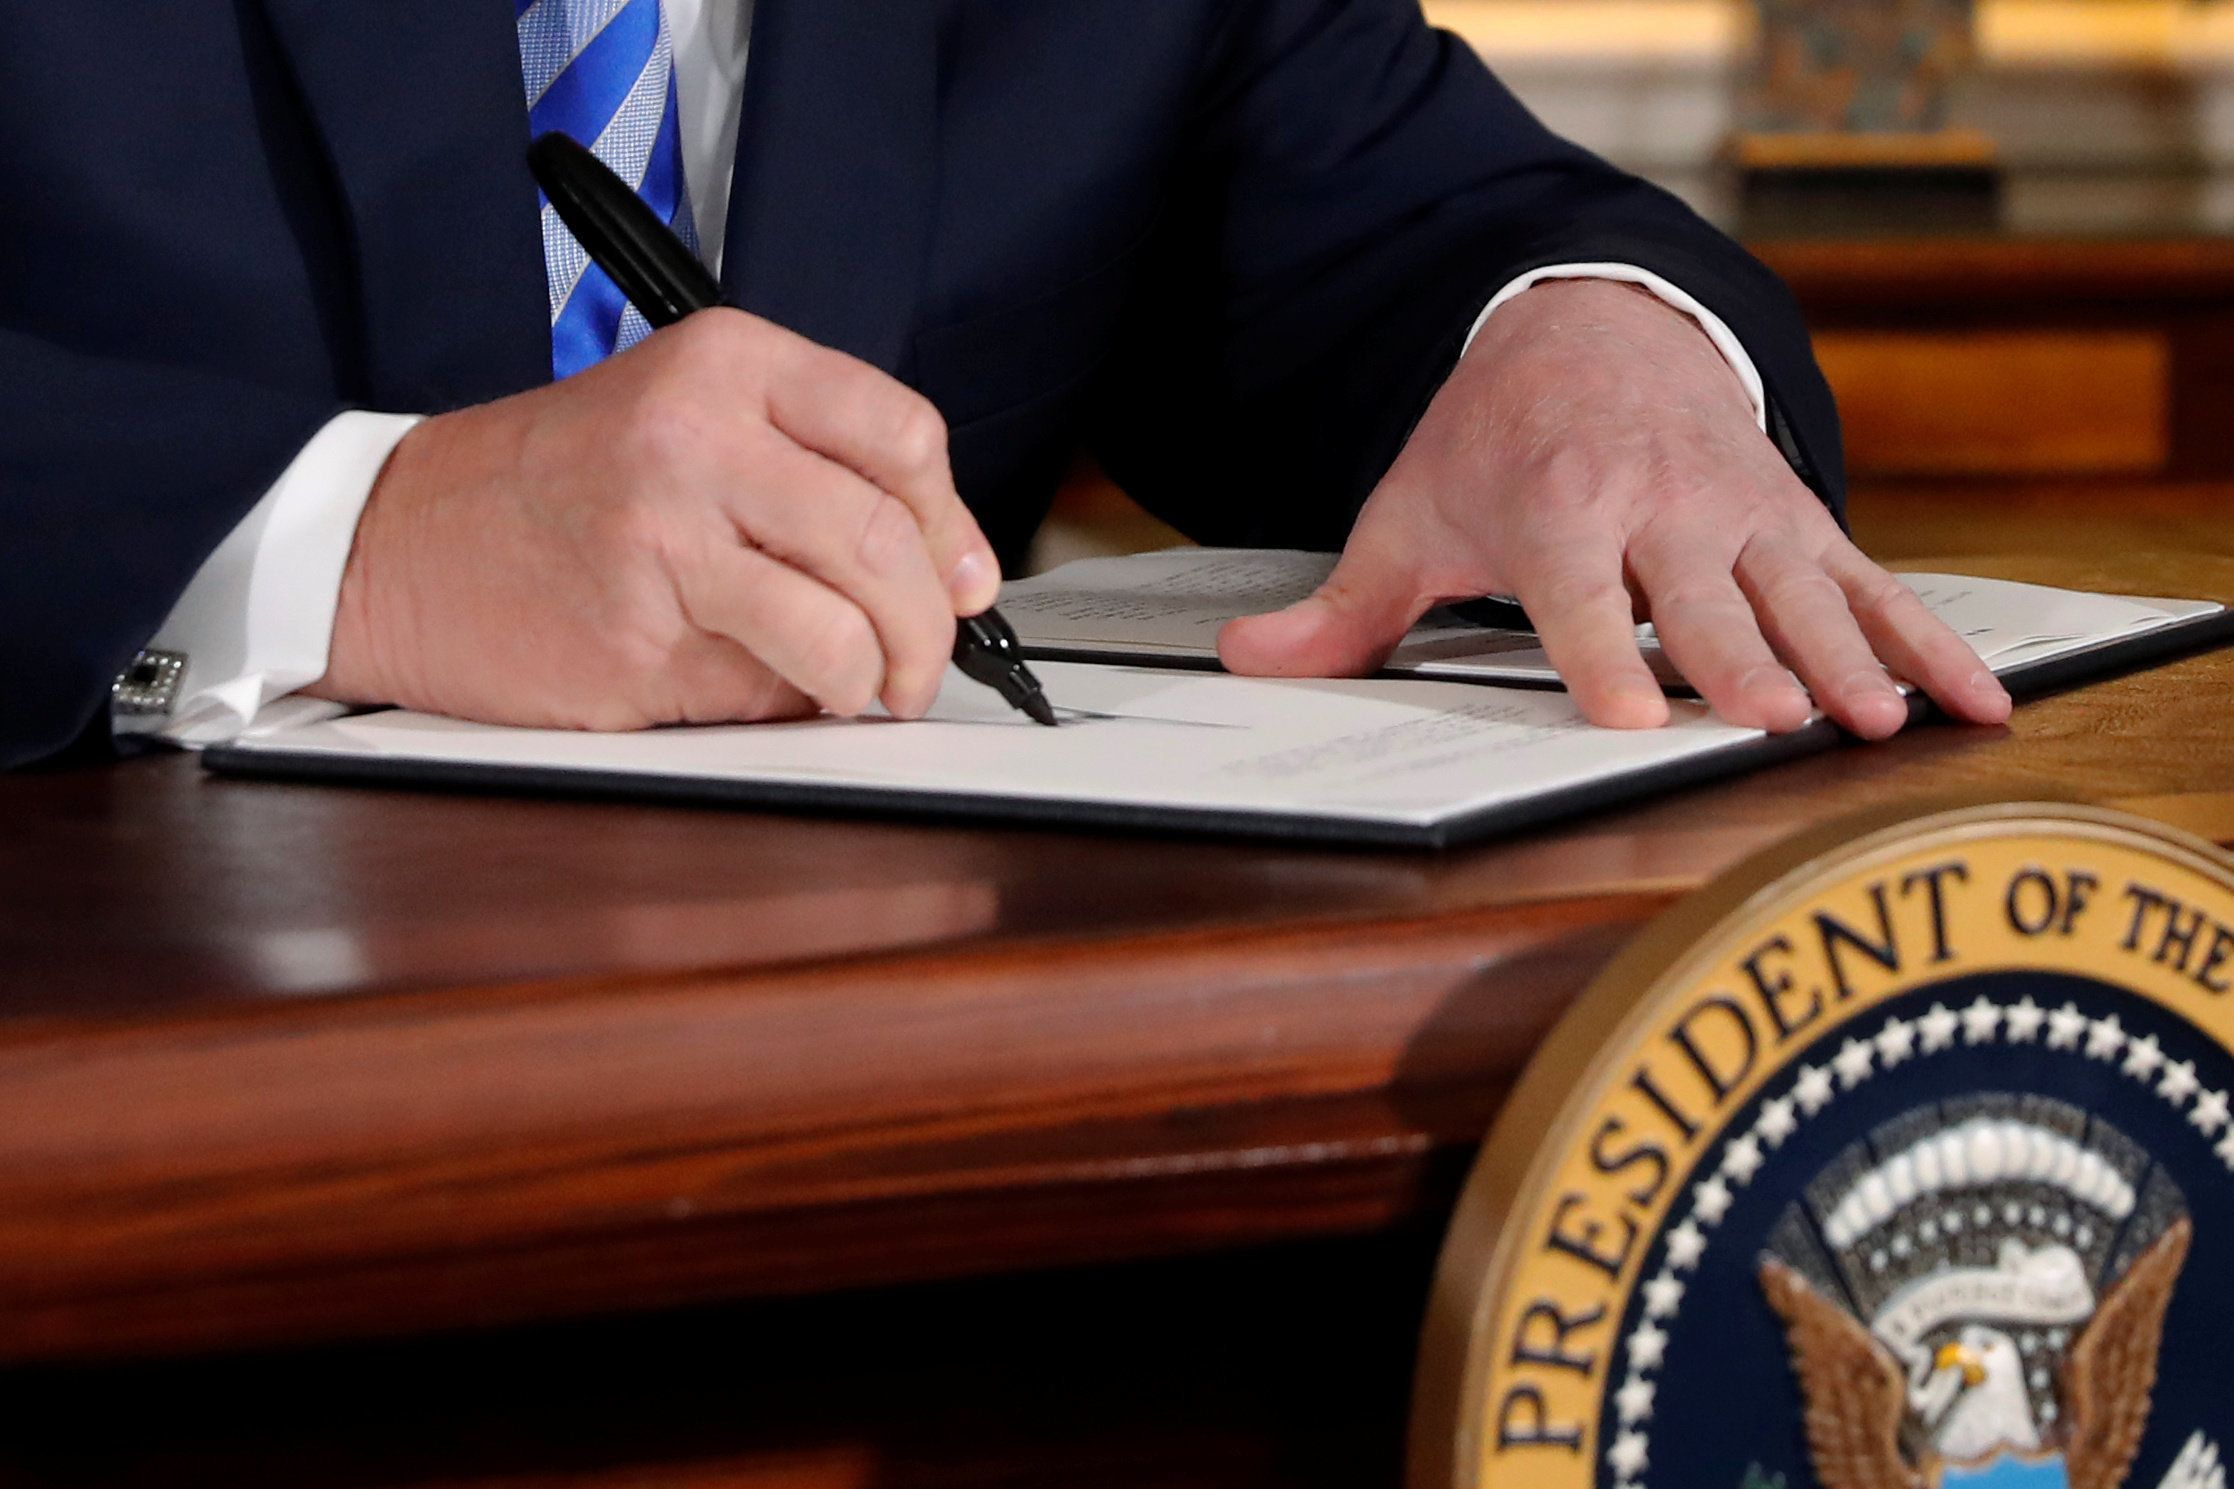 U.S. President Donald Trump signs a proclamation declaring his intention to withdraw from the JCPOA Iran nuclear agreement in the Diplomatic Room at the White House in Washington, U.S. May 8, 2018.  REUTERS/Jonathan Ernst